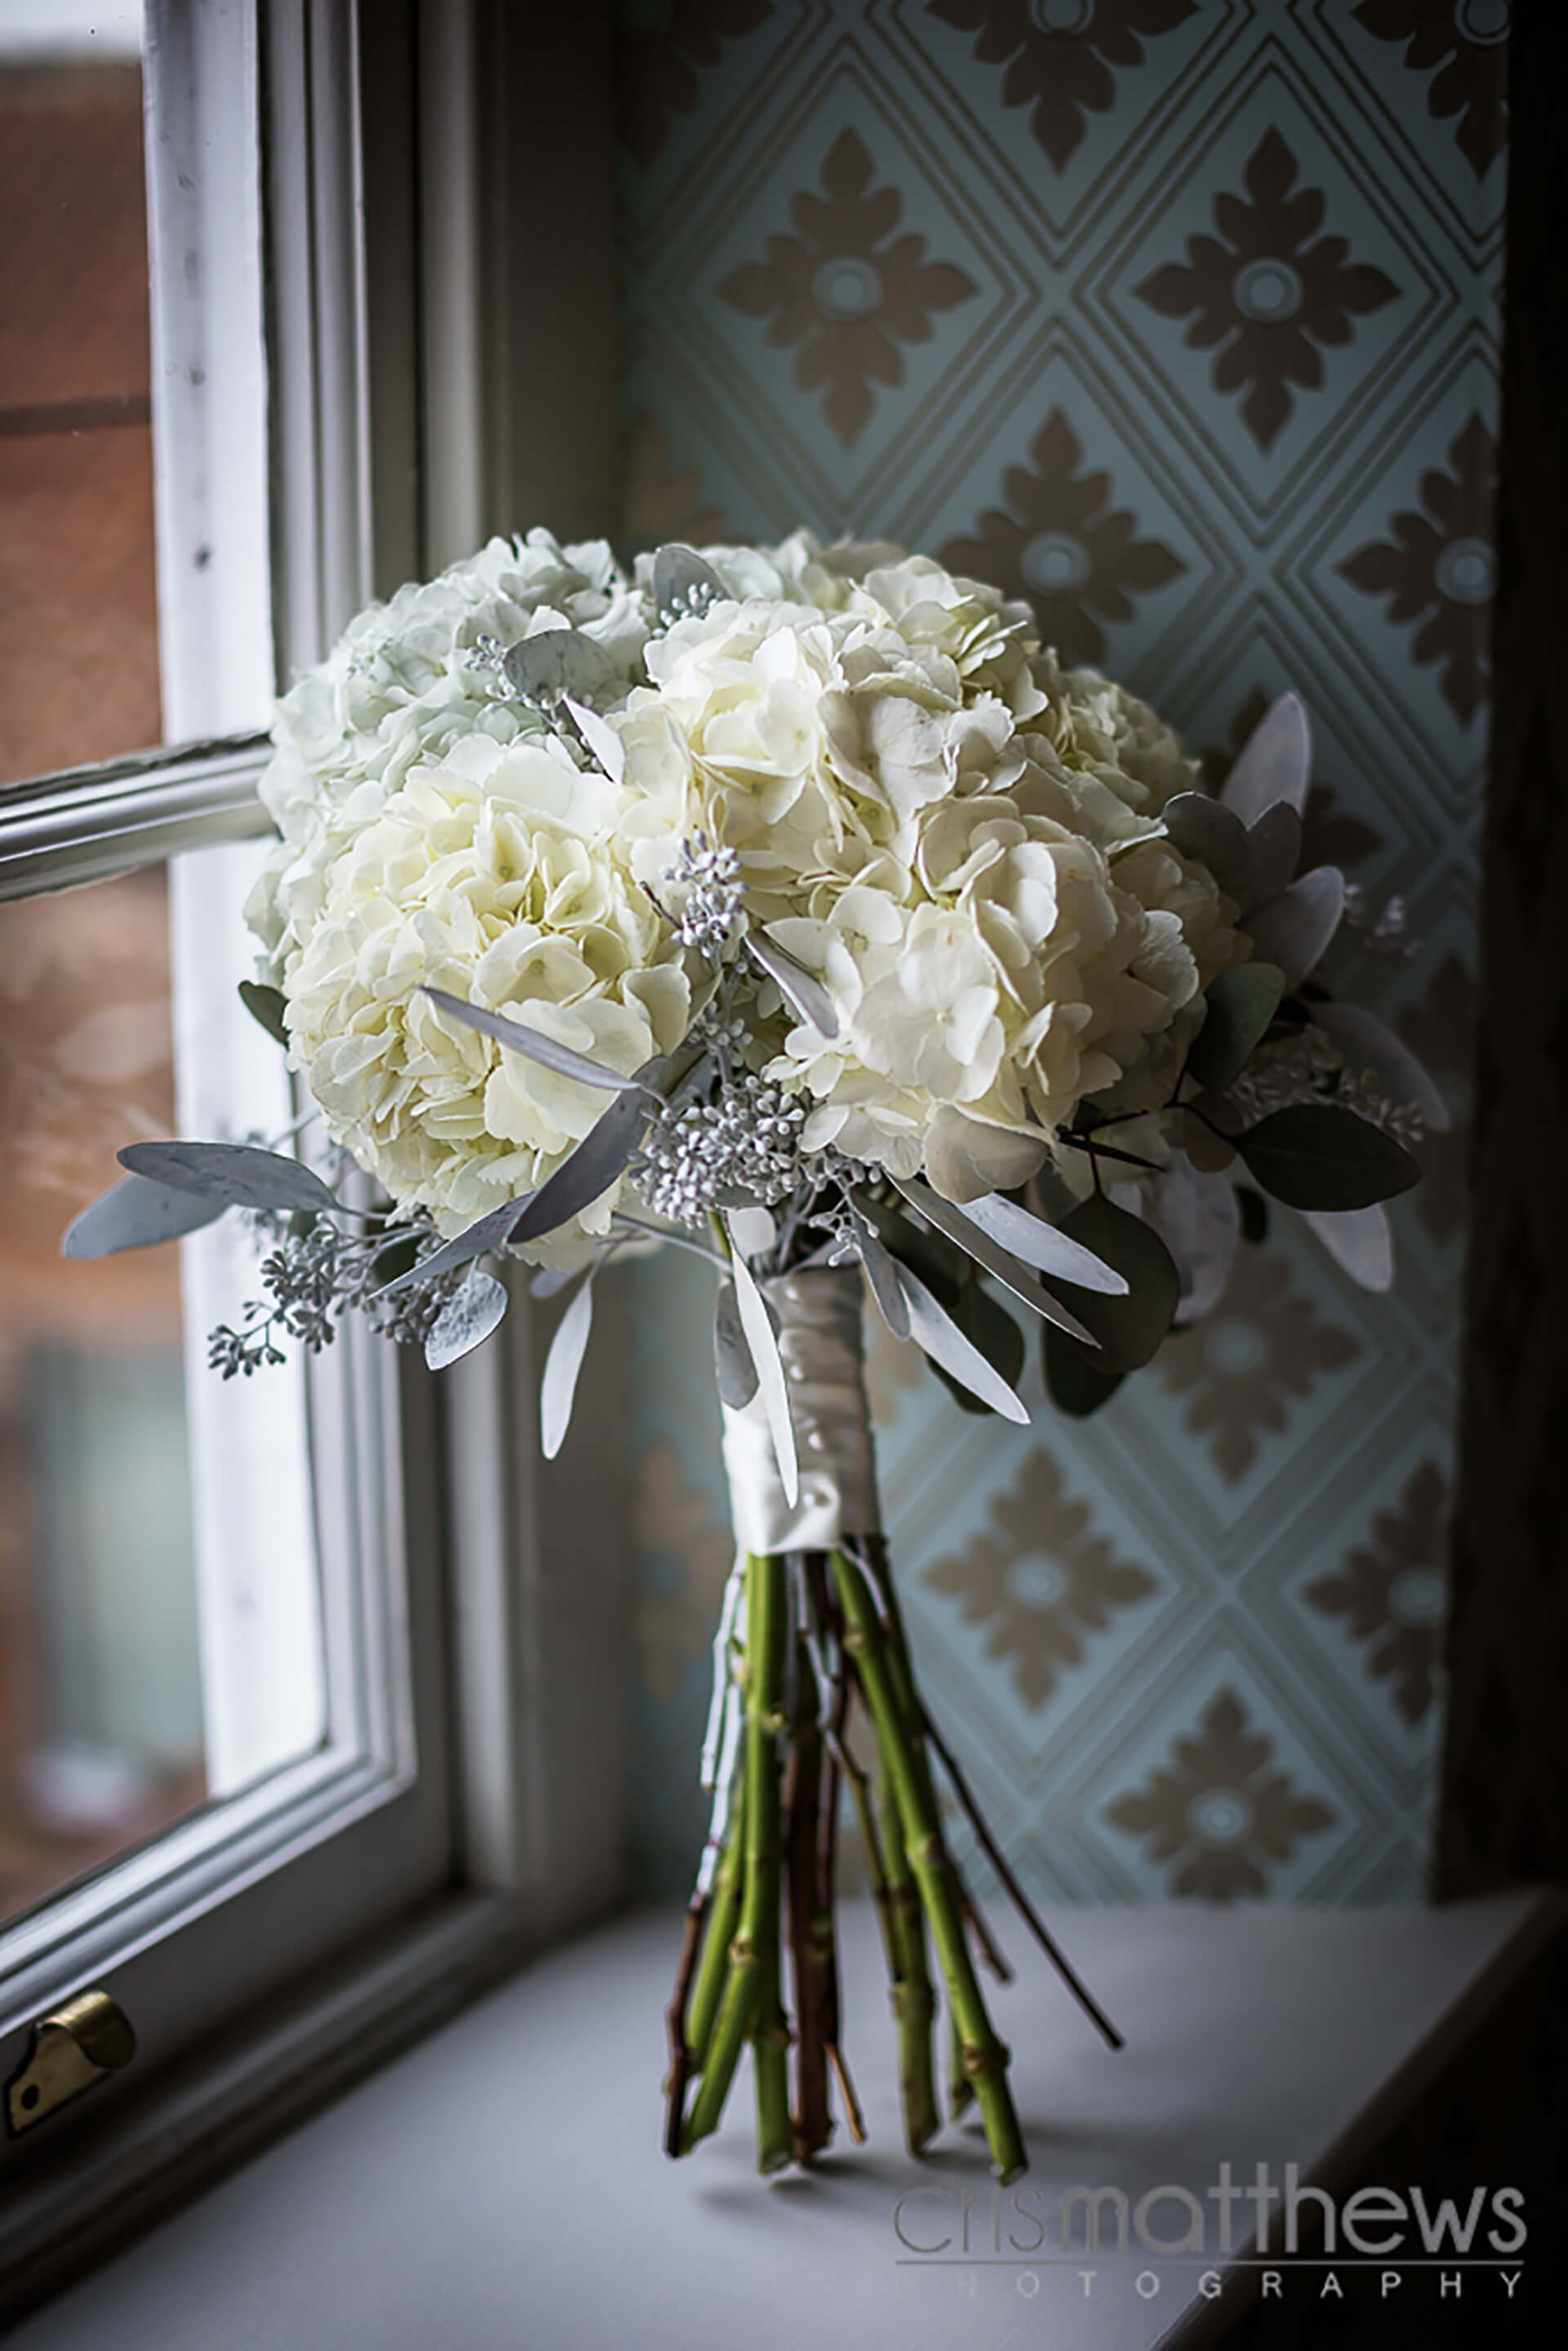 "Winter bouquet captured by <a href=""http://www.crismatthews.com/"">Chris Matthews Photography</a>"